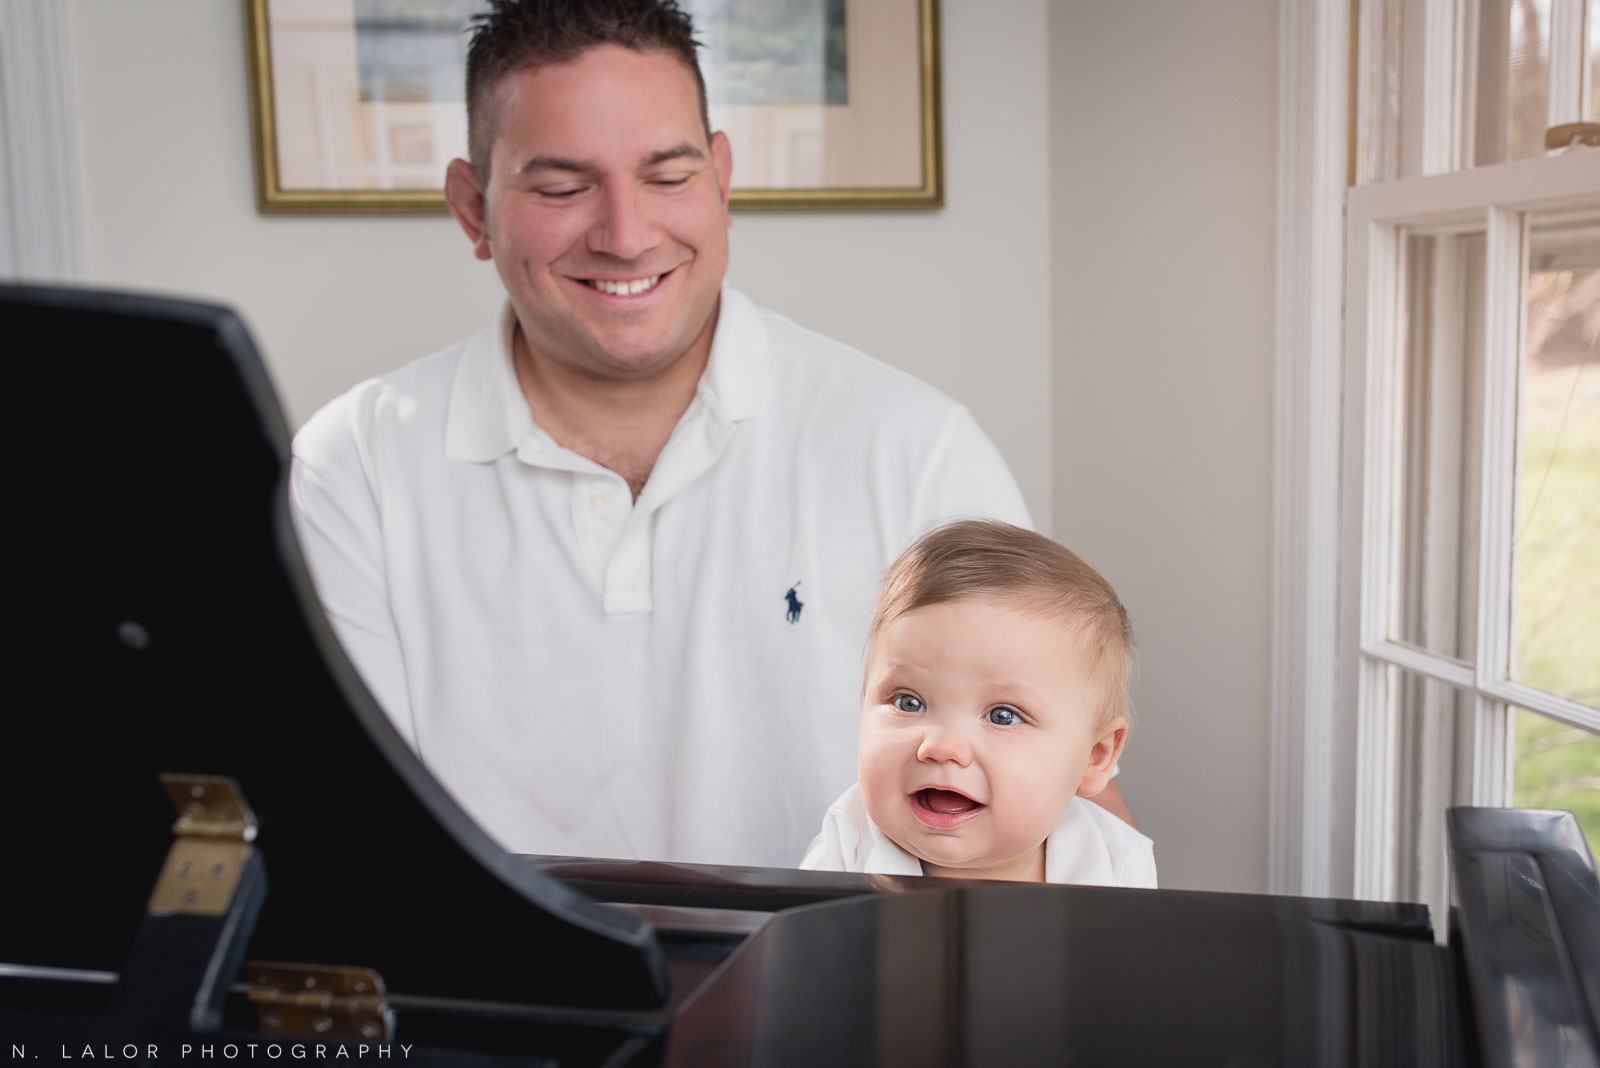 Playing piano with Dad. Lifestyle family photo session with N. Lalor Photography. Fairfield County, Connecticut.